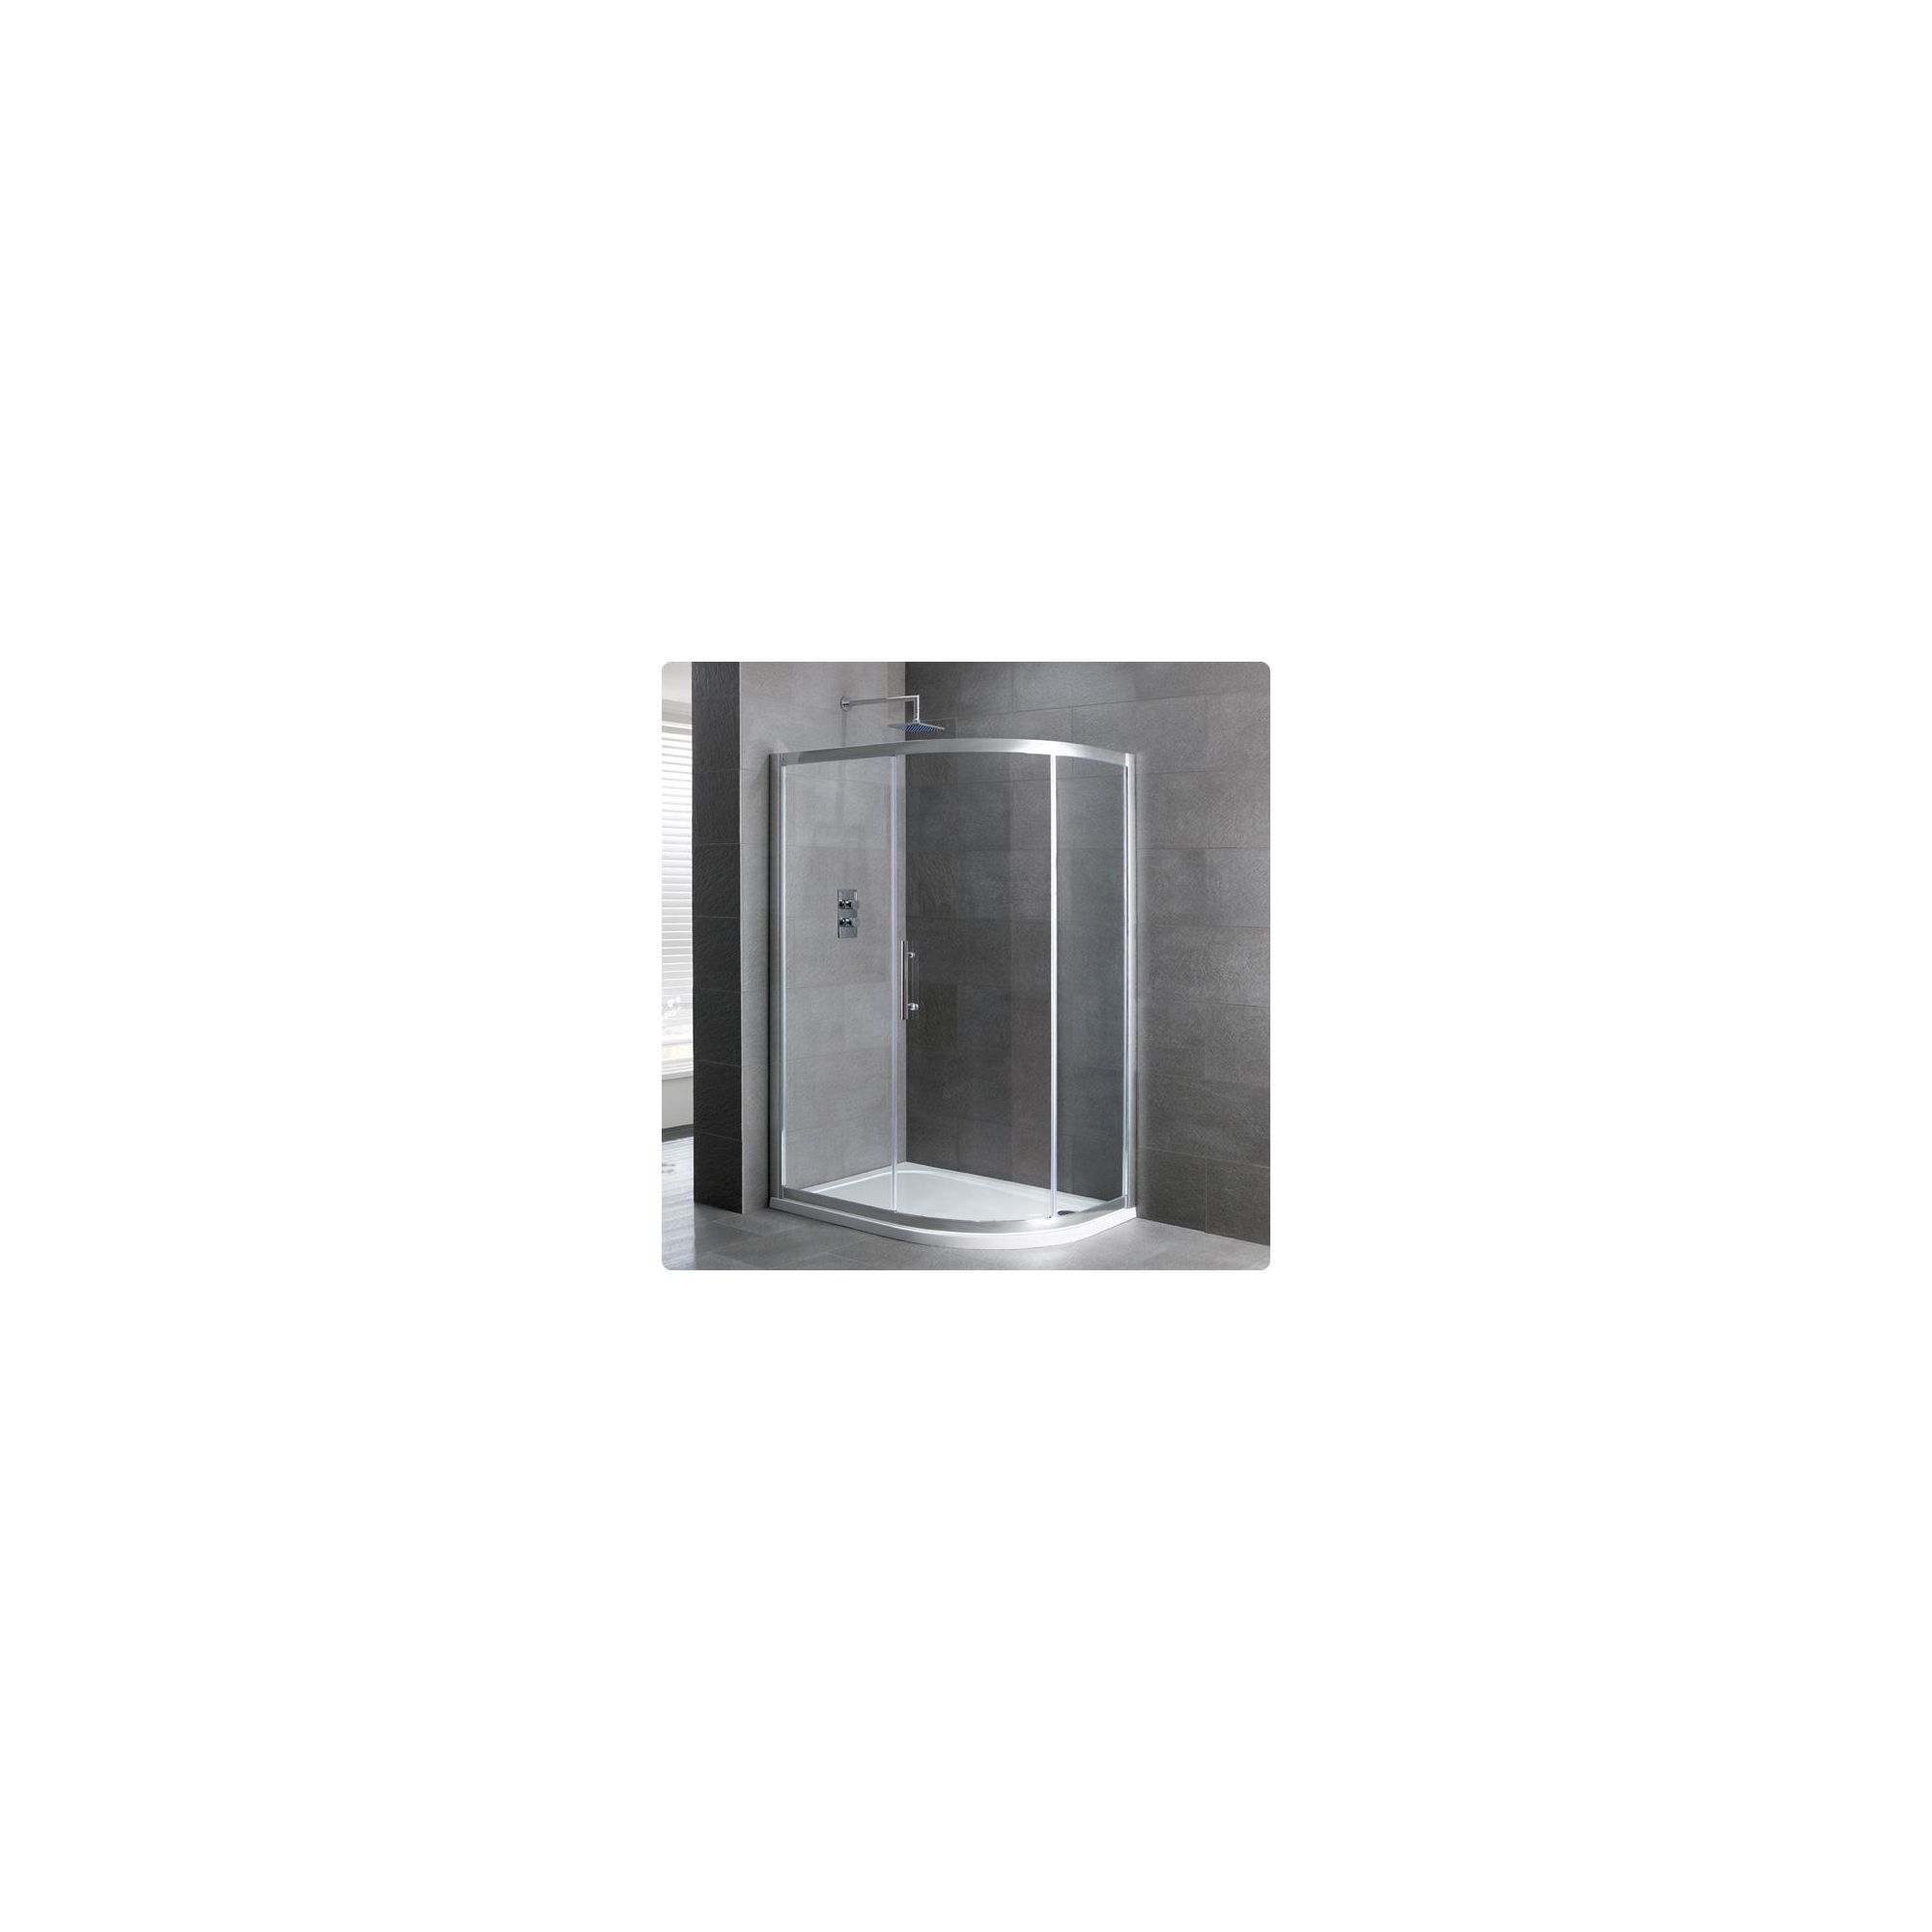 Duchy Select Silver 1 Door Offset Quadrant Shower Enclosure 900mm x 800mm, Standard Tray, 6mm Glass at Tesco Direct